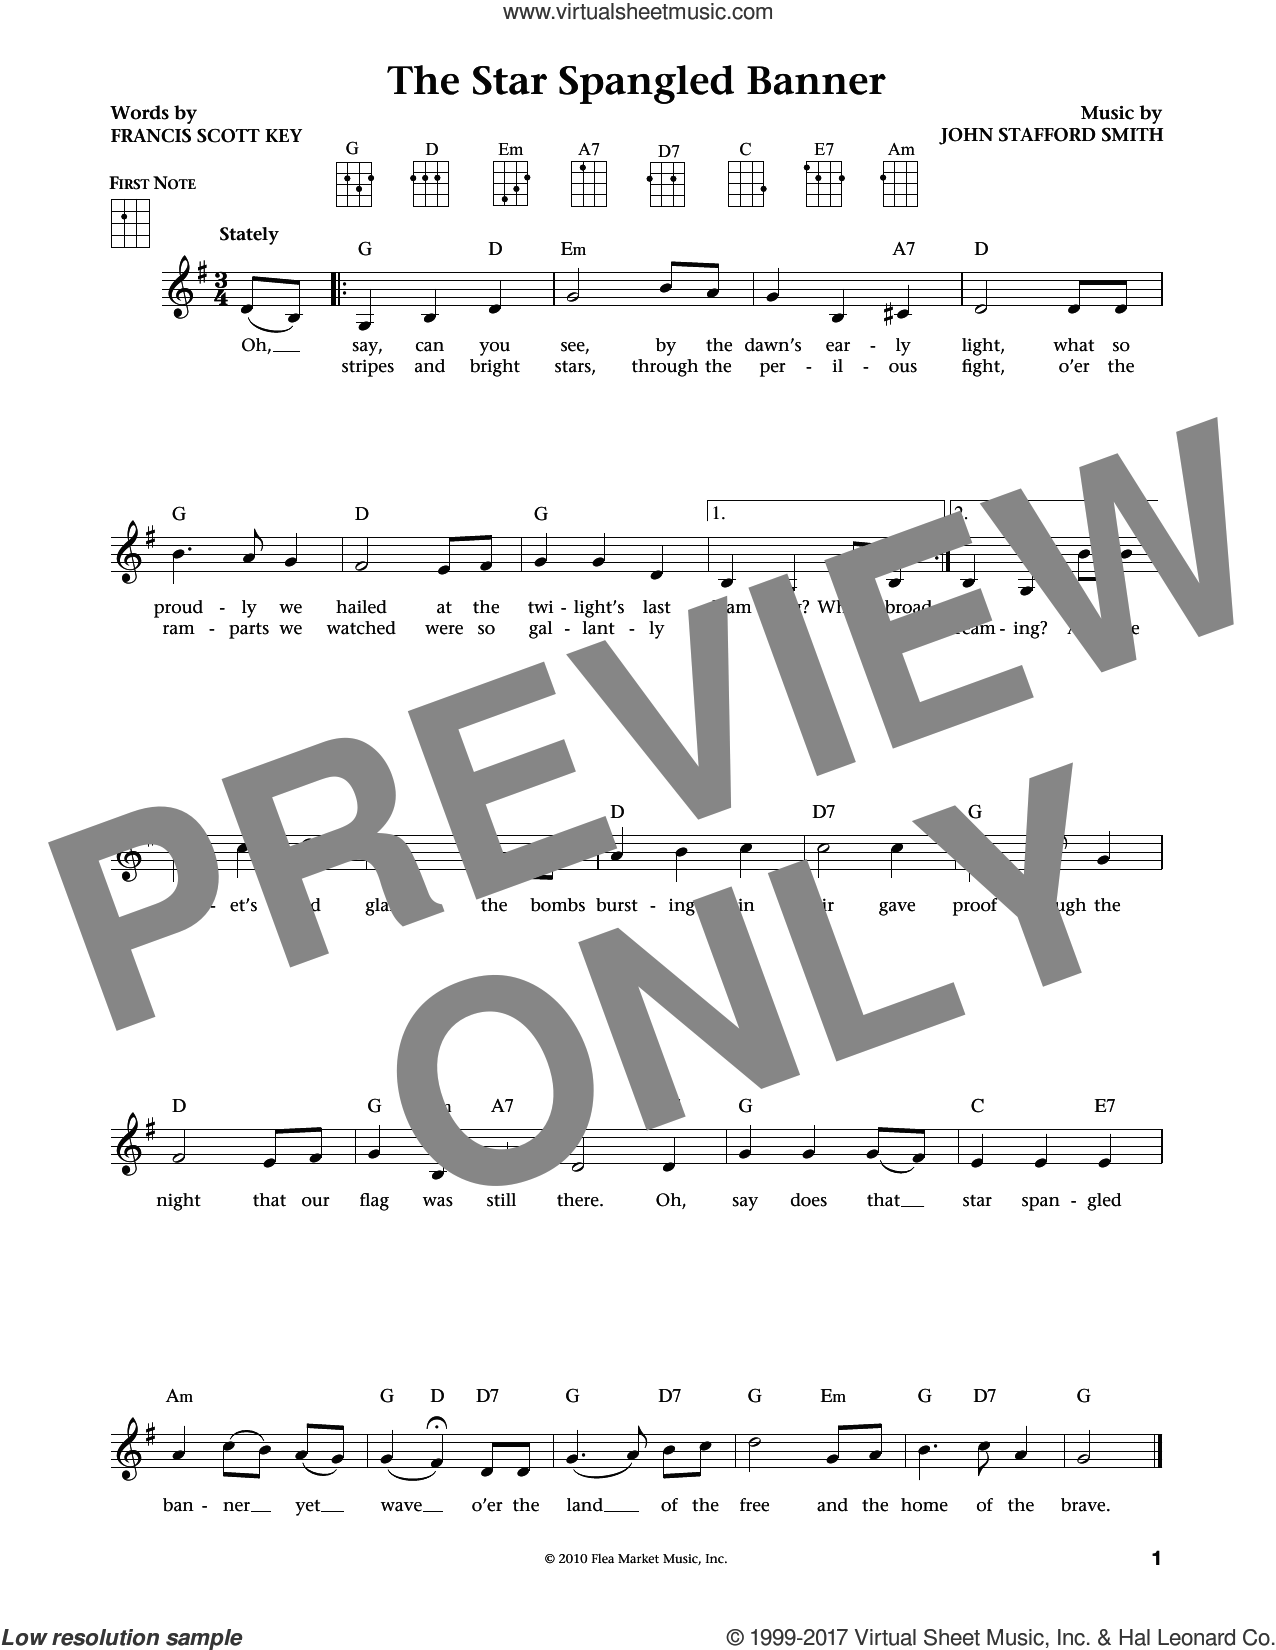 The Star Spangled Banner (from The Daily Ukulele) (arr. Liz and Jim Beloff) sheet music for ukulele by John Stafford Smith, Jim Beloff, Liz Beloff and Francis Scott Key, intermediate skill level